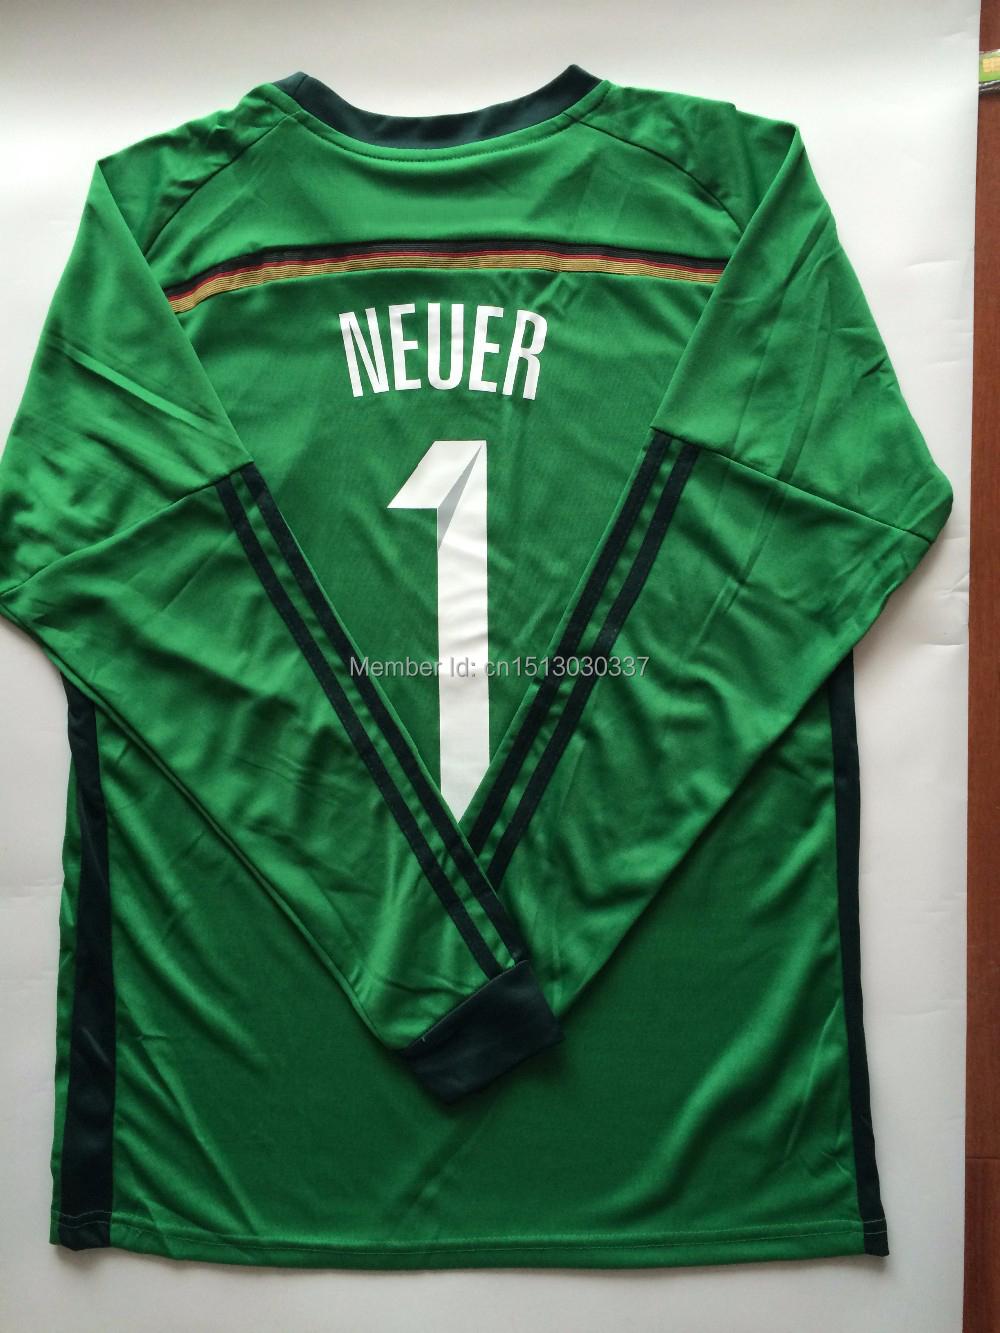 cee5bed846c Top Quality Thai Germany soccer jersey goalkeeper jersey Manuel Neuer jersey  4 Stars kit World Cup 2014 Germany goalkeeper shirt-in Soccer Jerseys from  ...